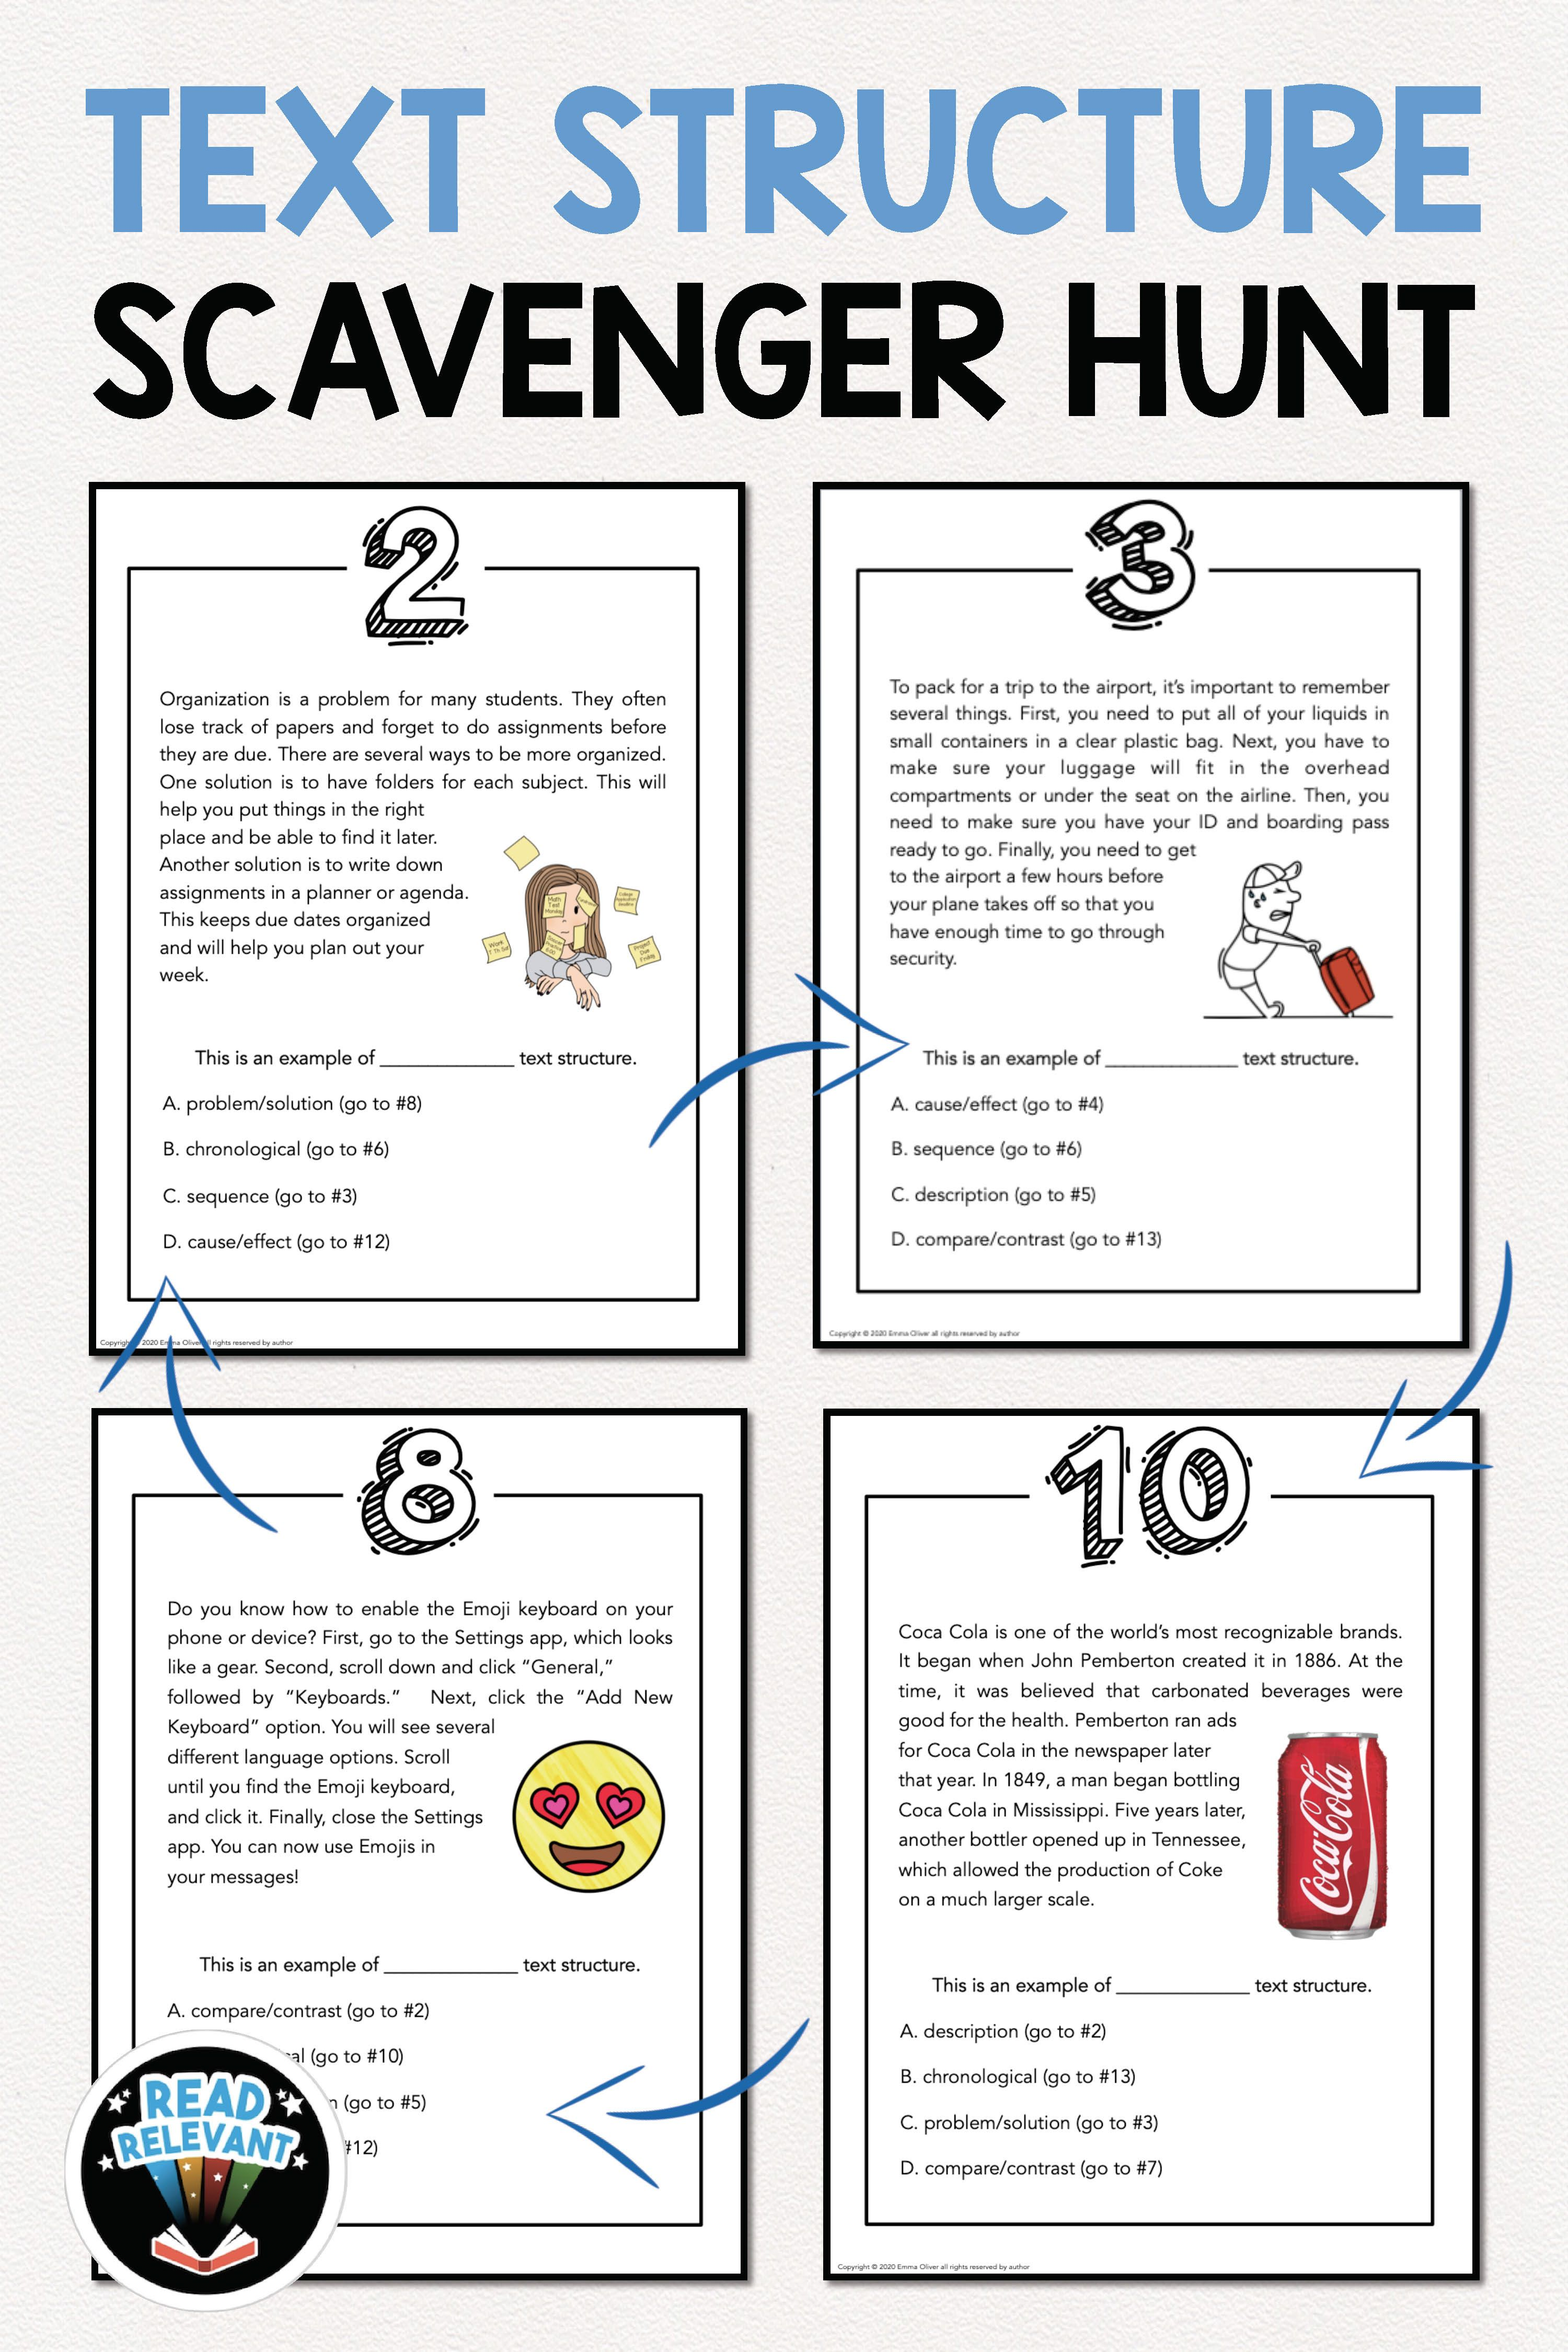 Text Structure Scavenger Hunt Activity